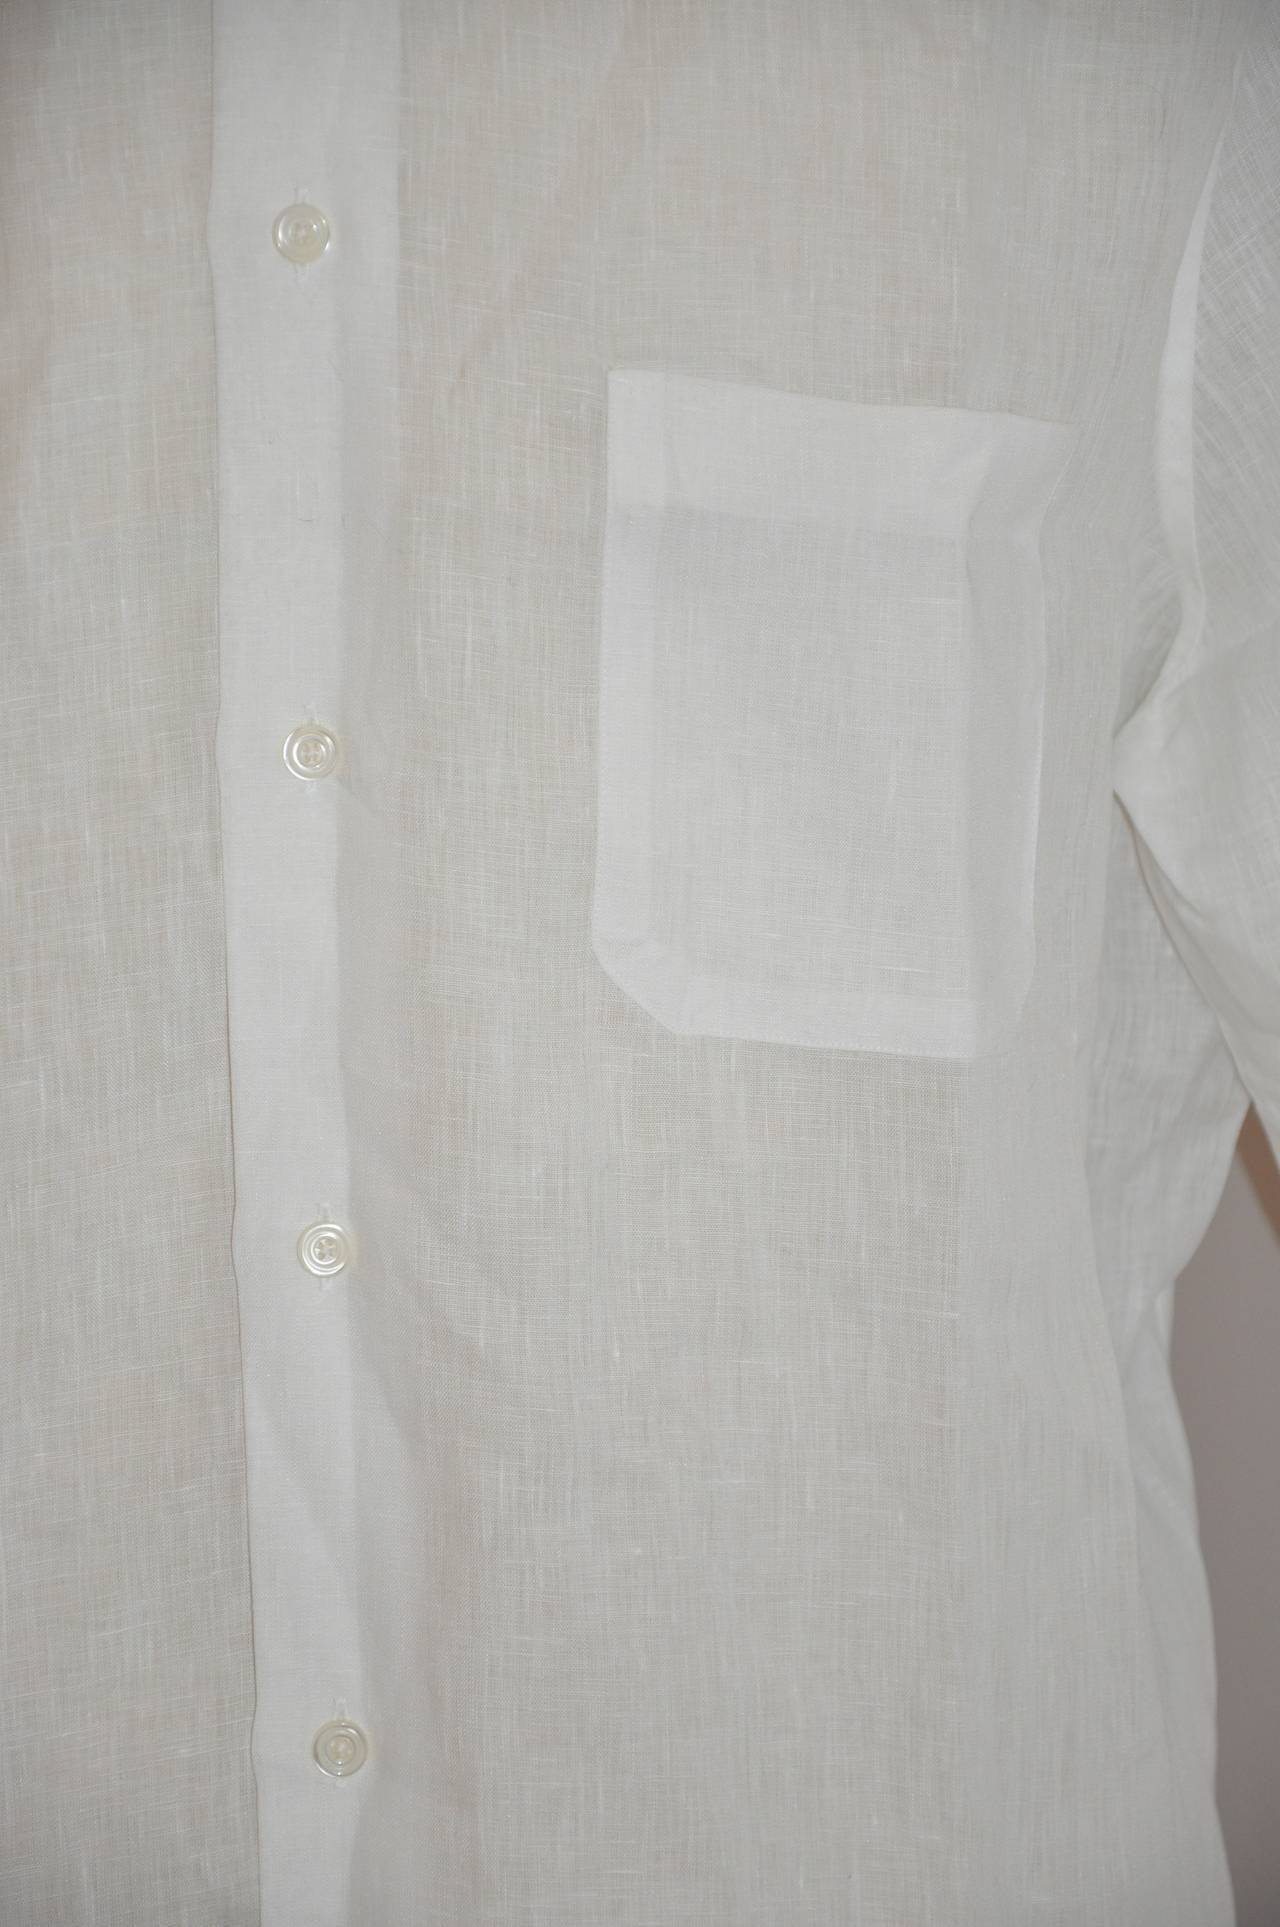 Hermes Men's White Linen Button Shirt with Detailed Cuffs For Sale 1